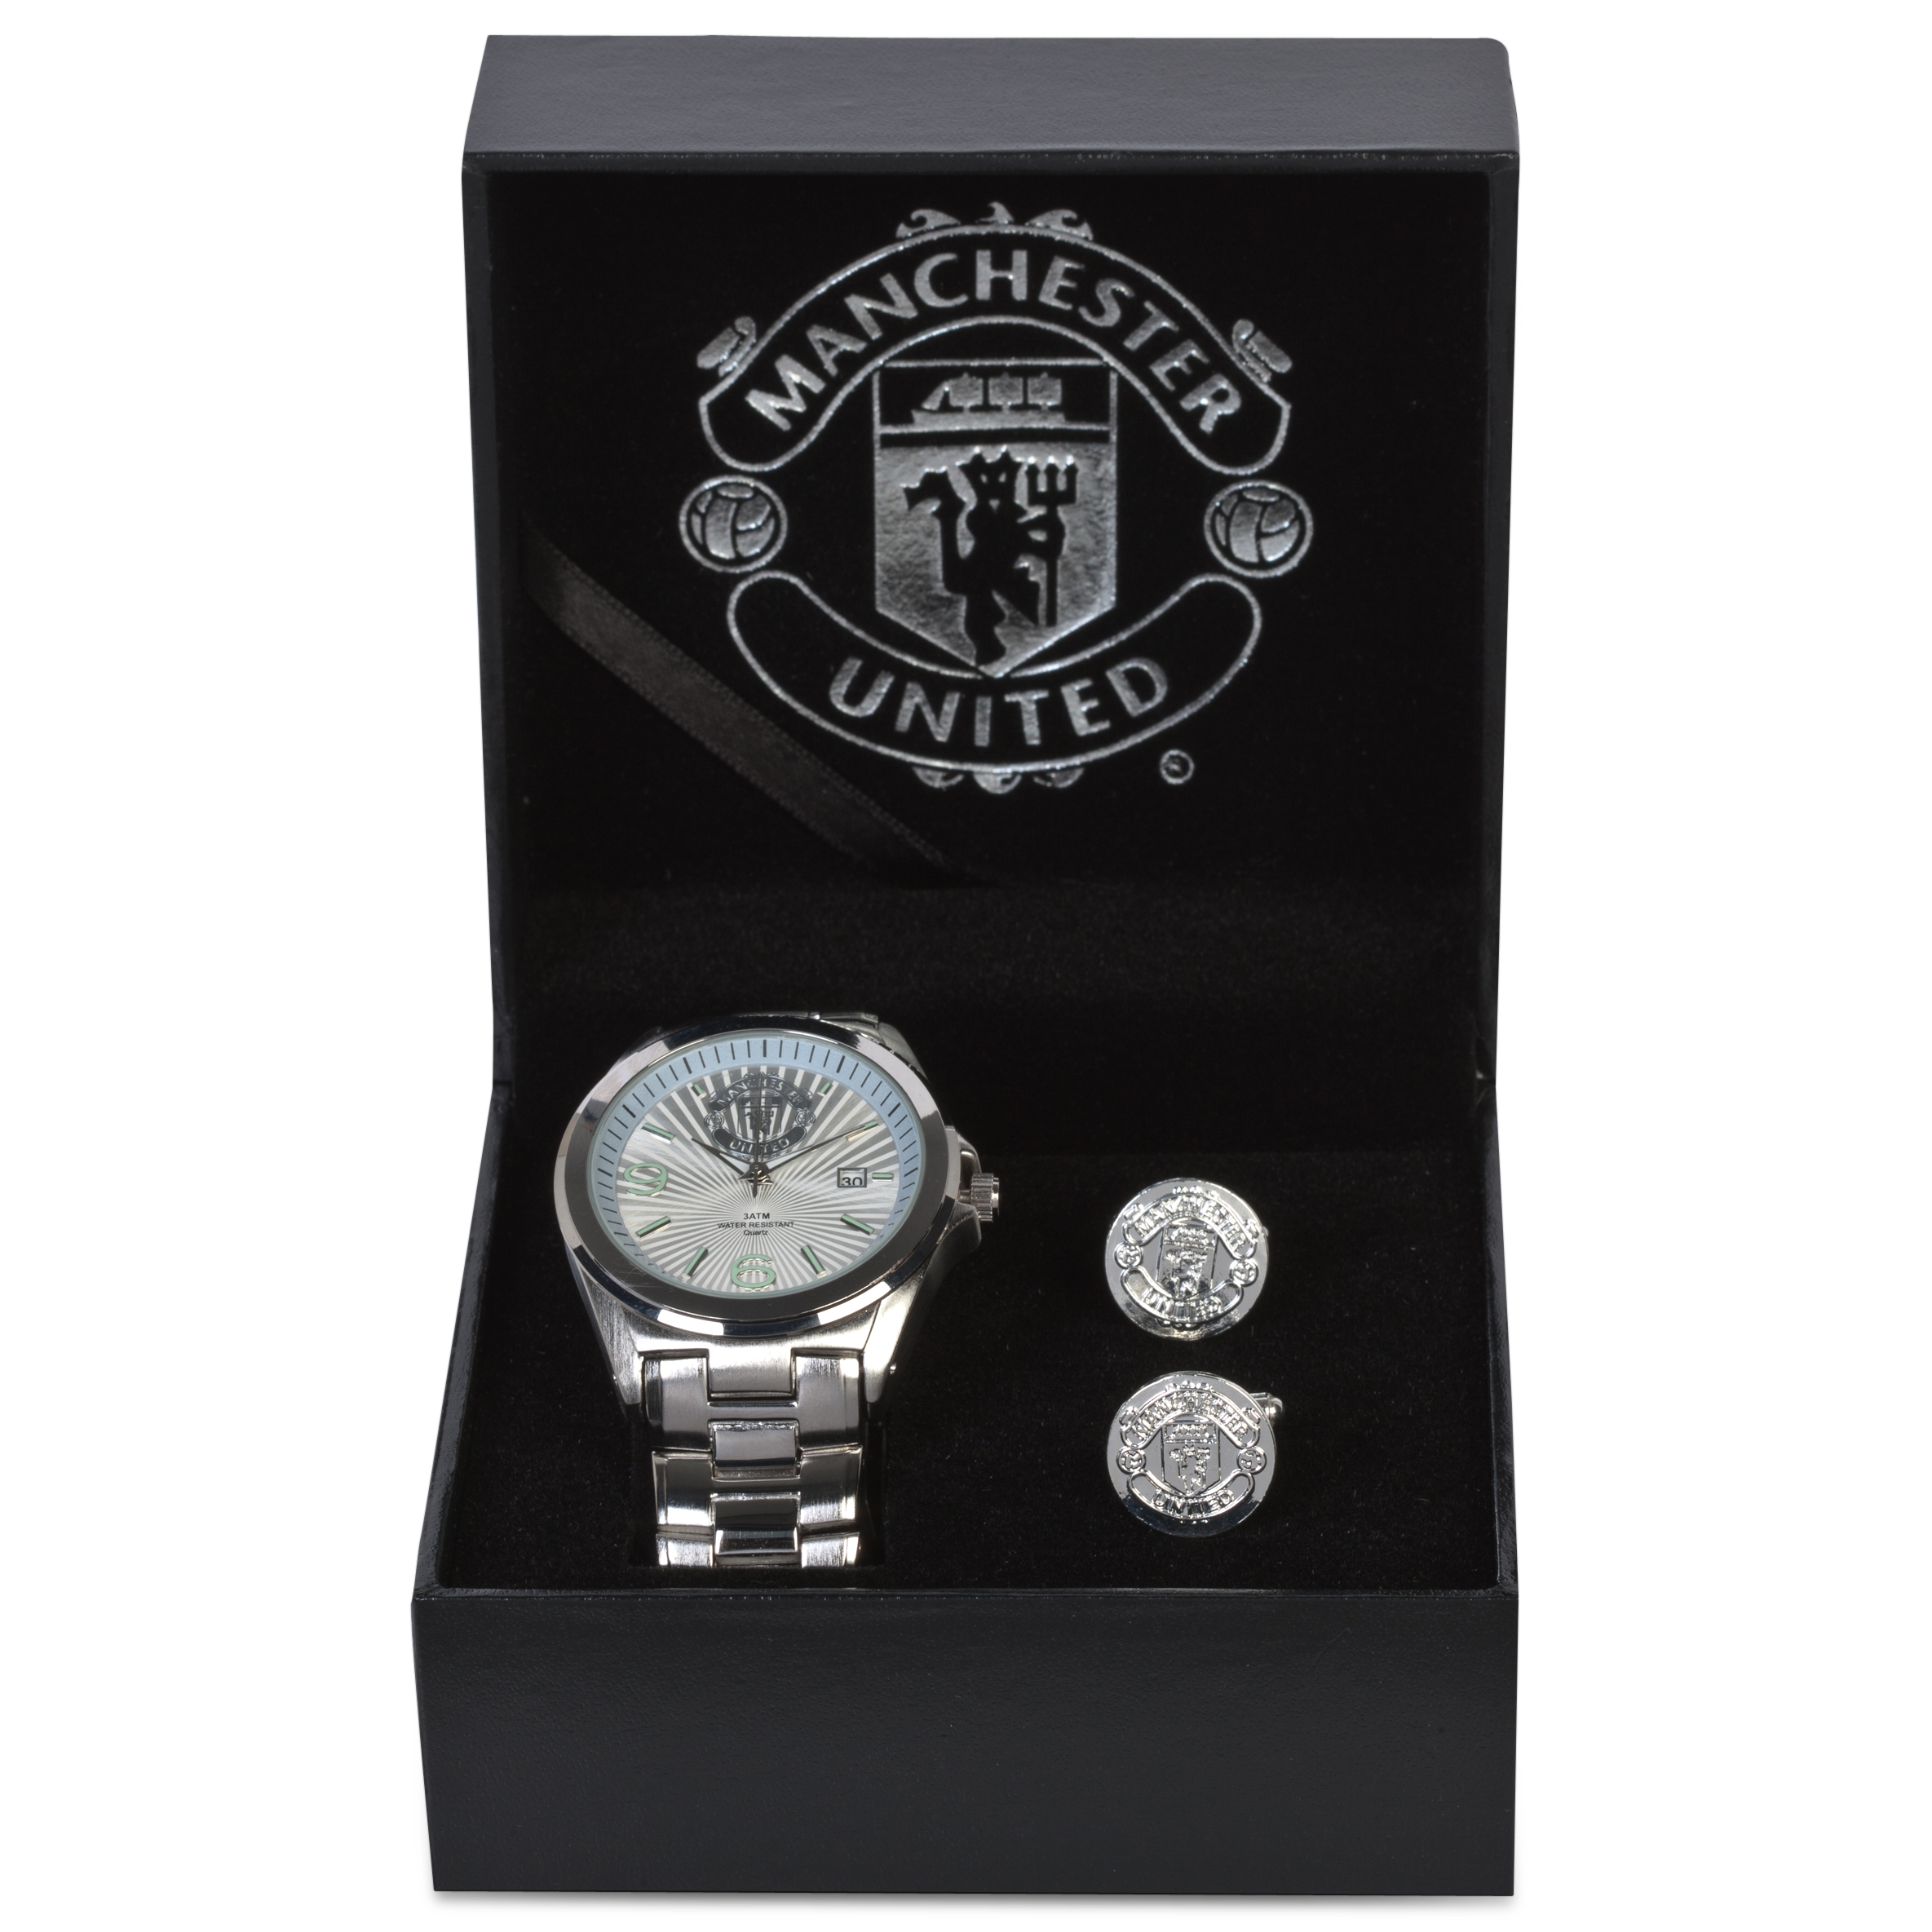 Manchester United Watch & Cufflink Set